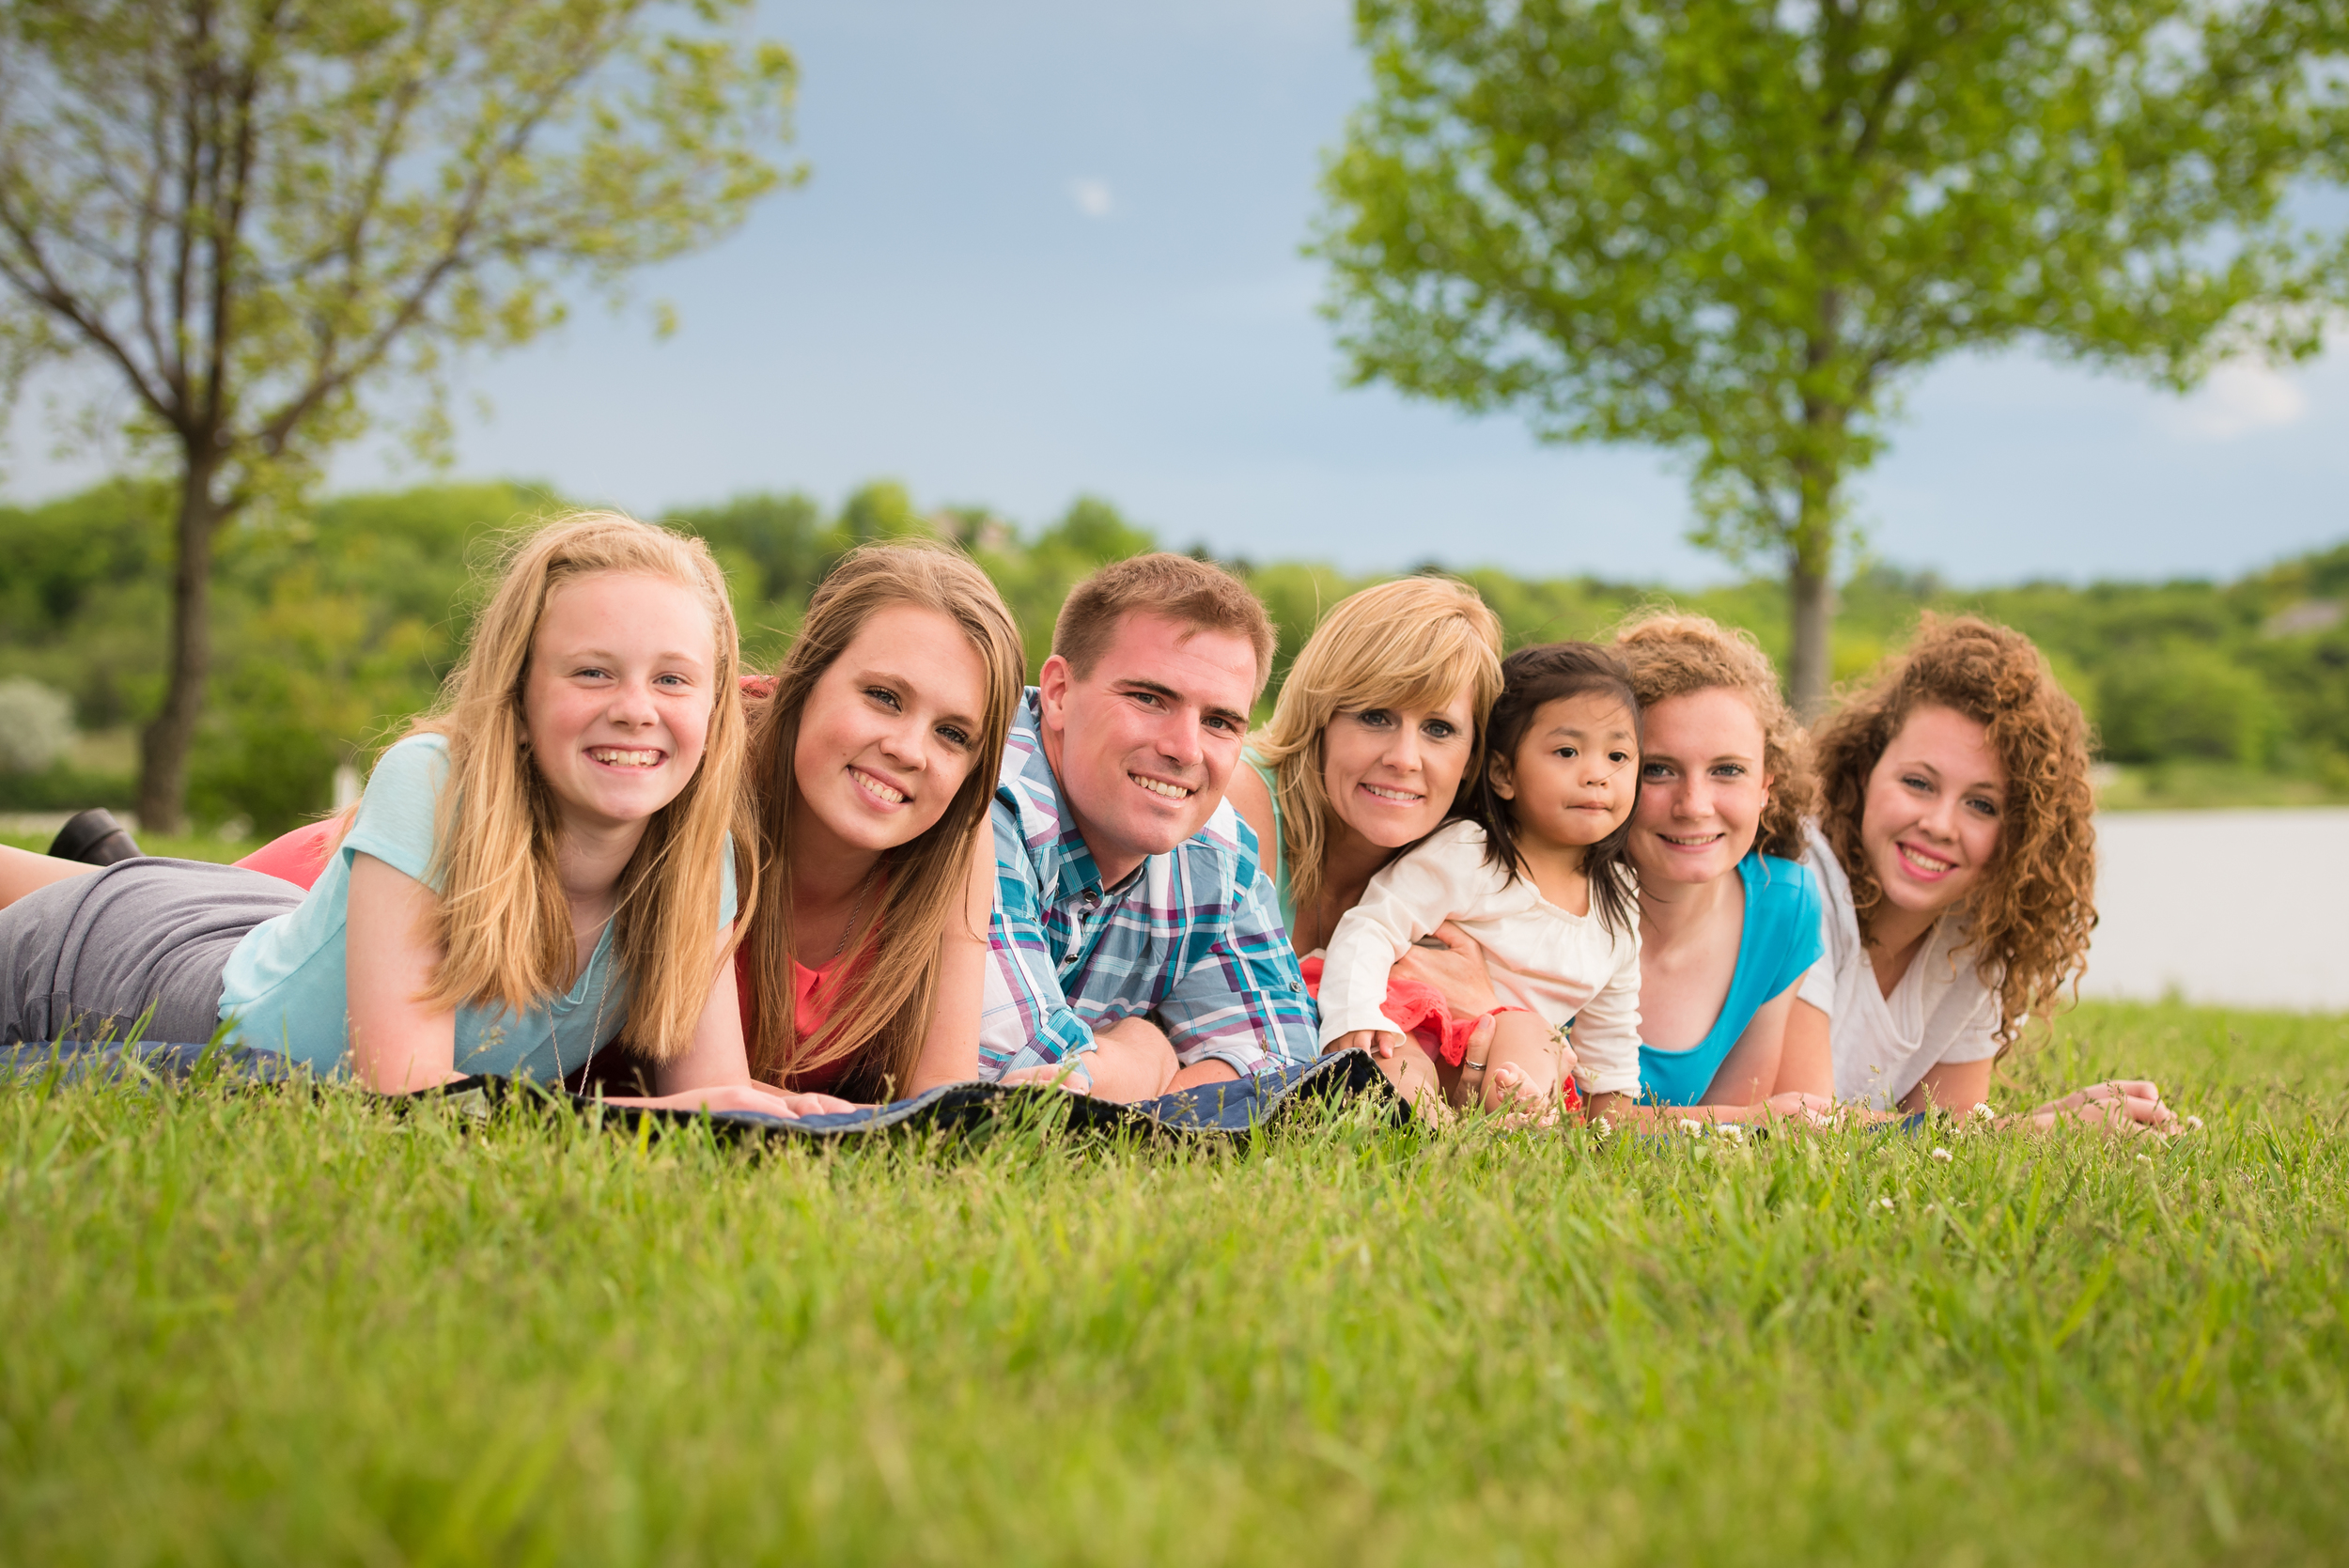 Vanderhorst Family Shoot57.jpg